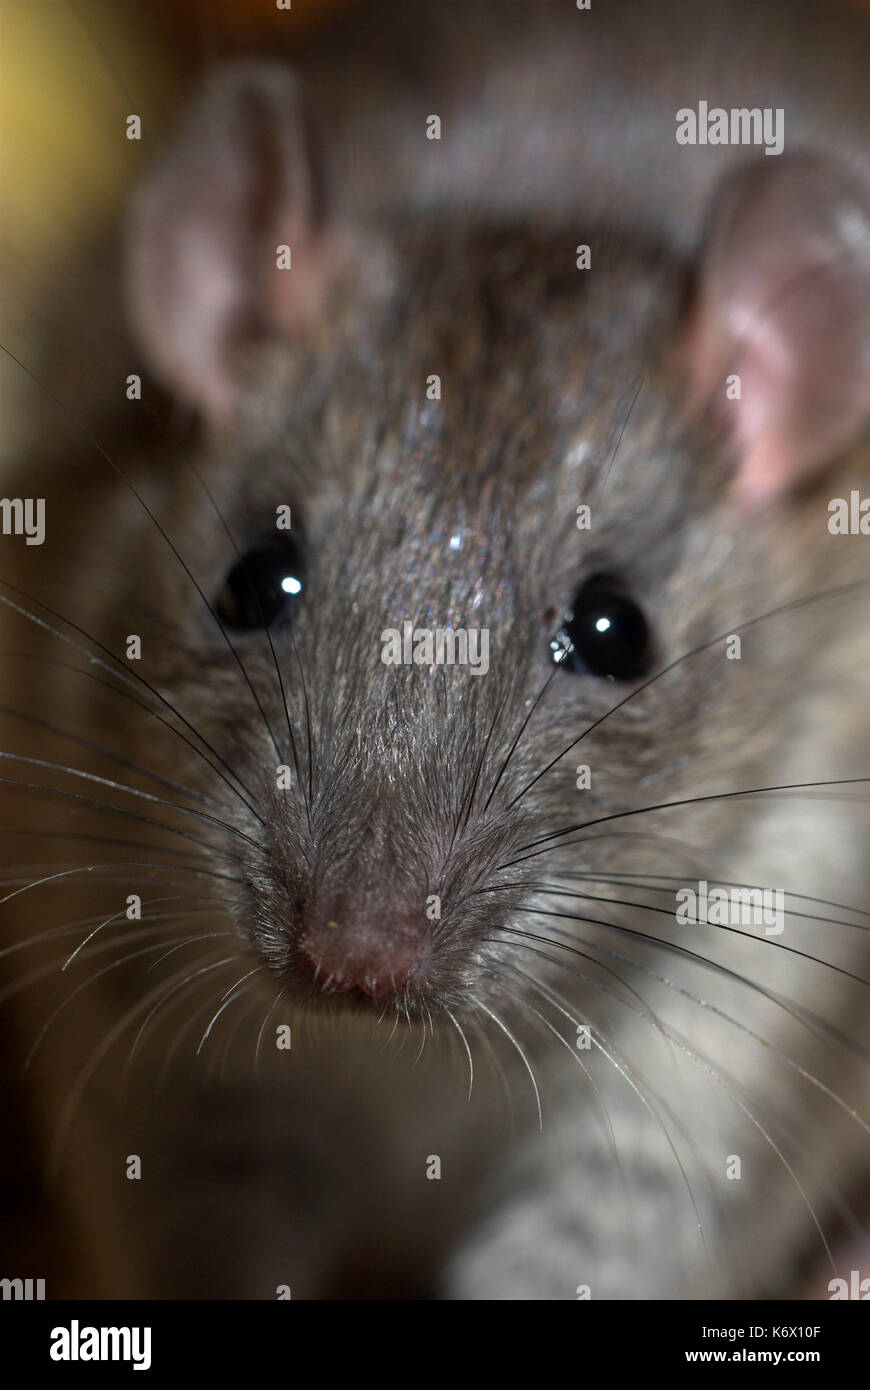 Black Rat, Rattus rattus, portrait, large ears and whiskers - Stock Image